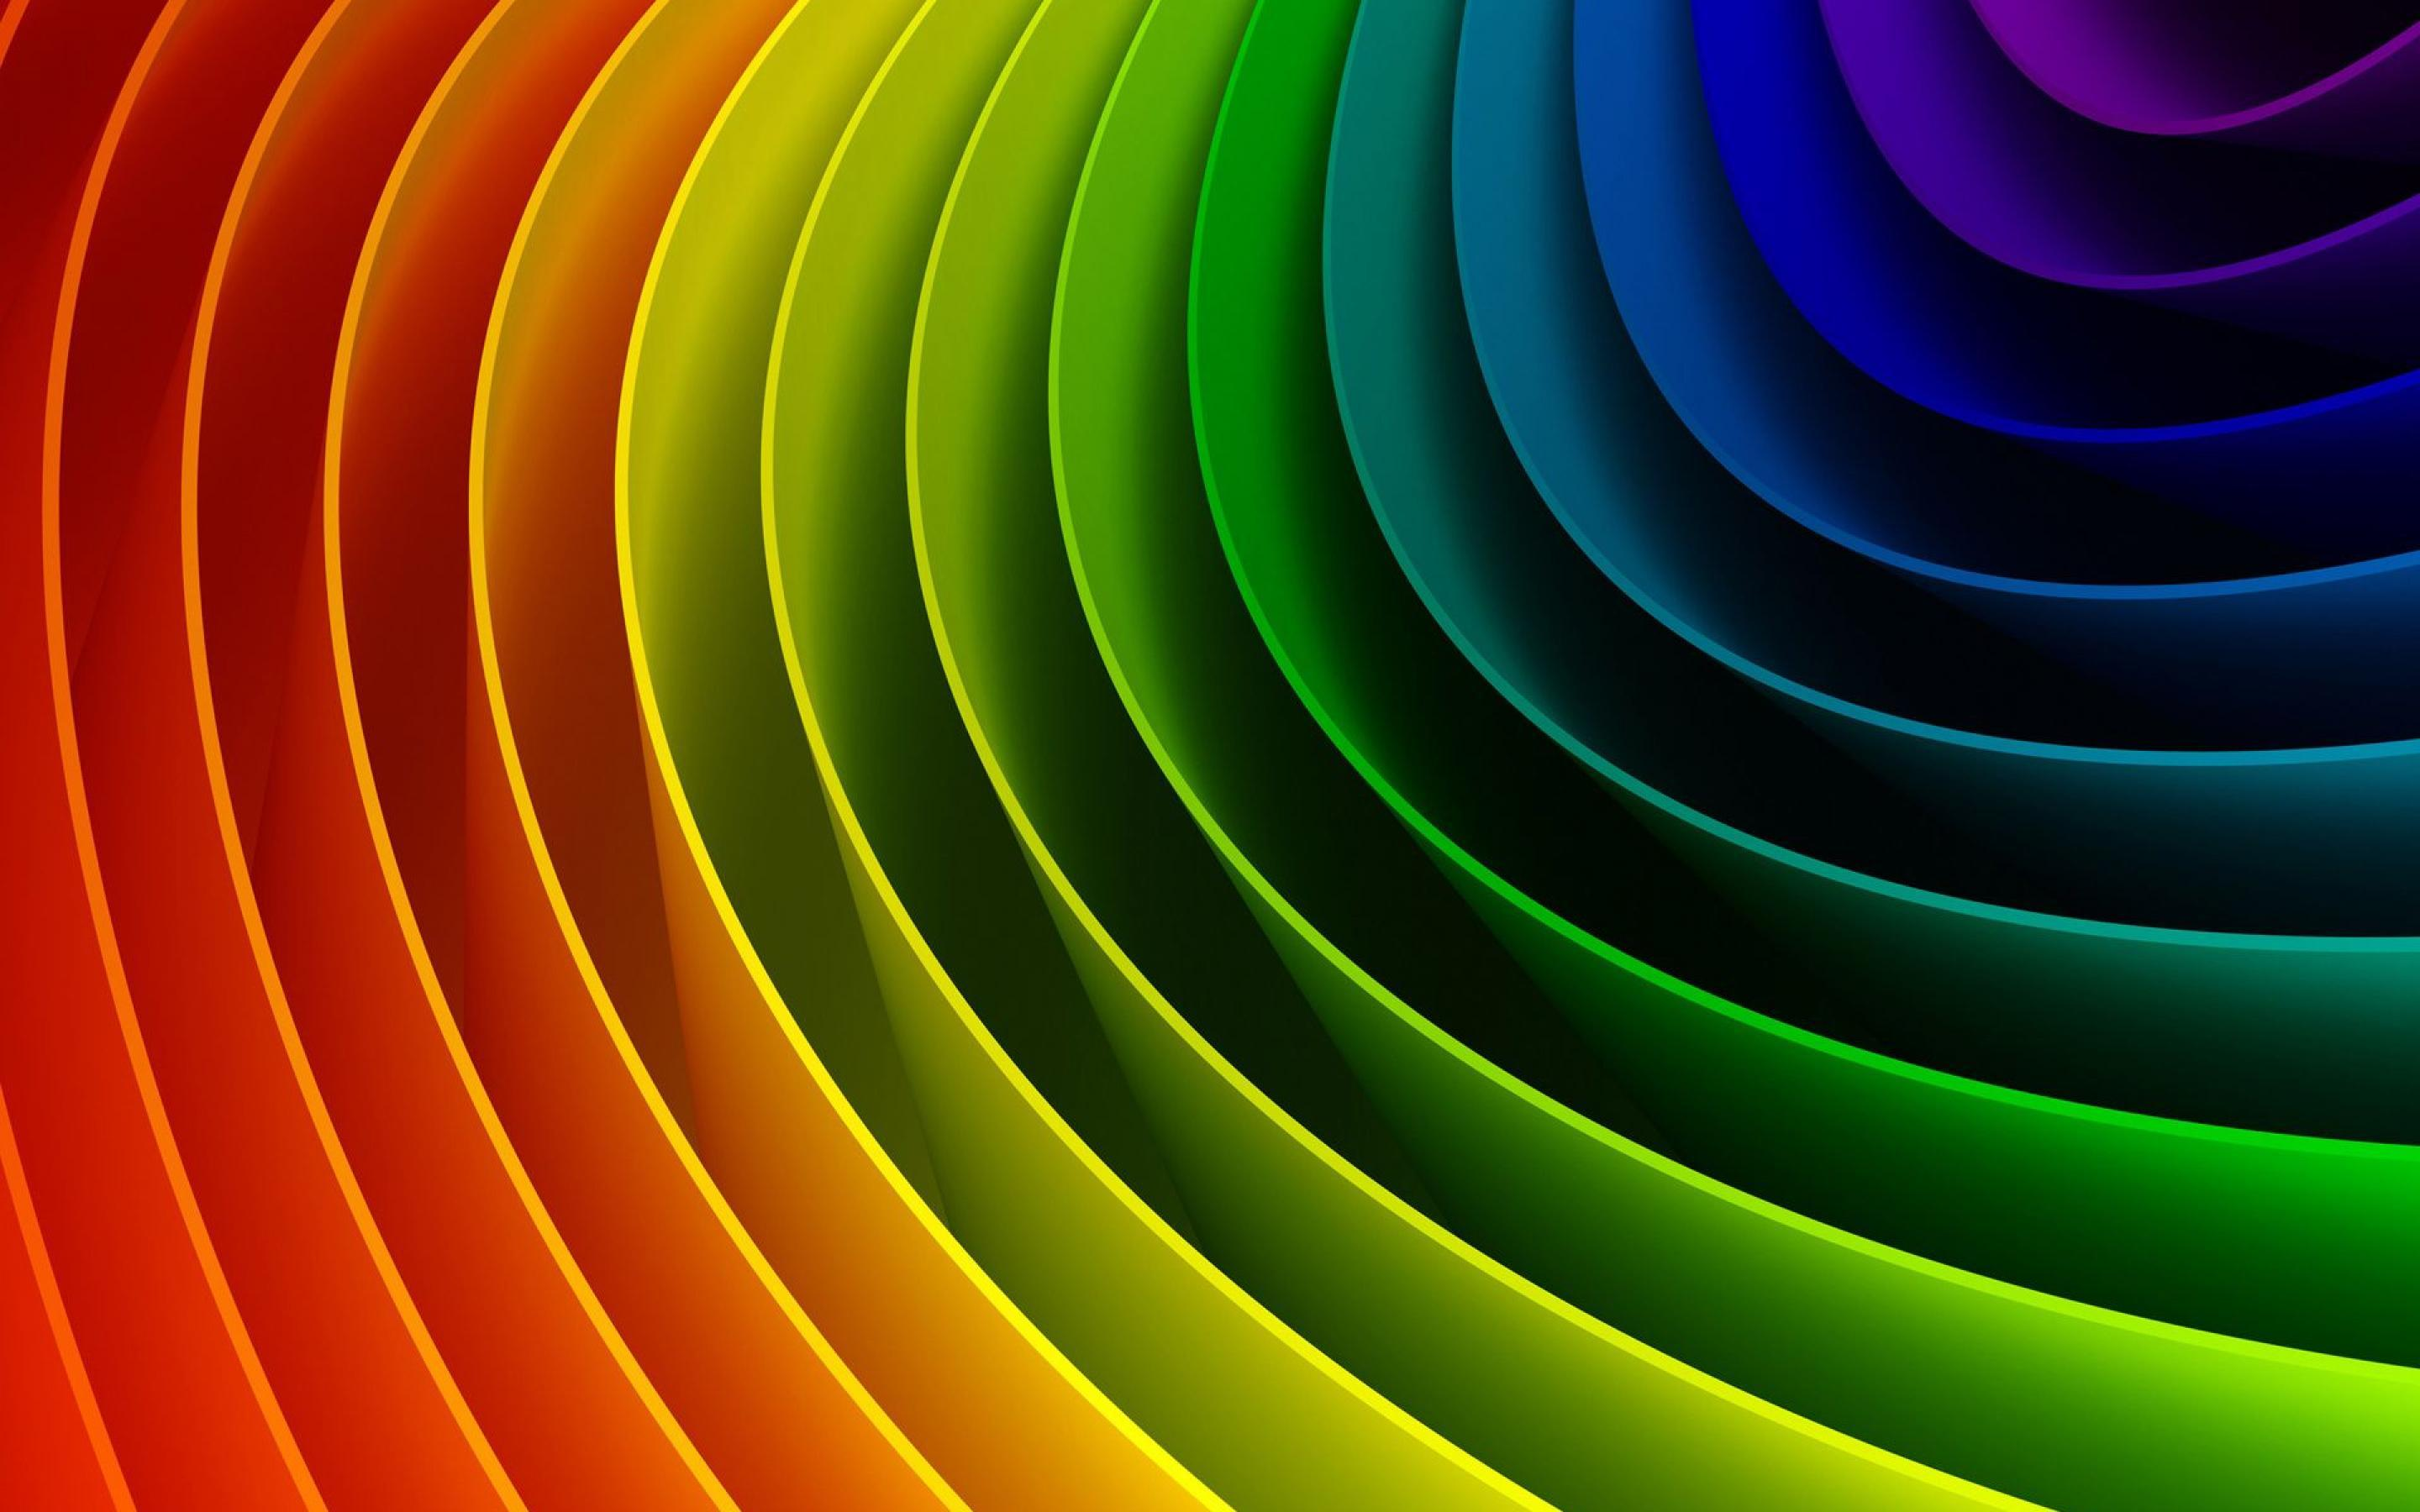 cool rainbow backgrounds wallpapers - photo #35